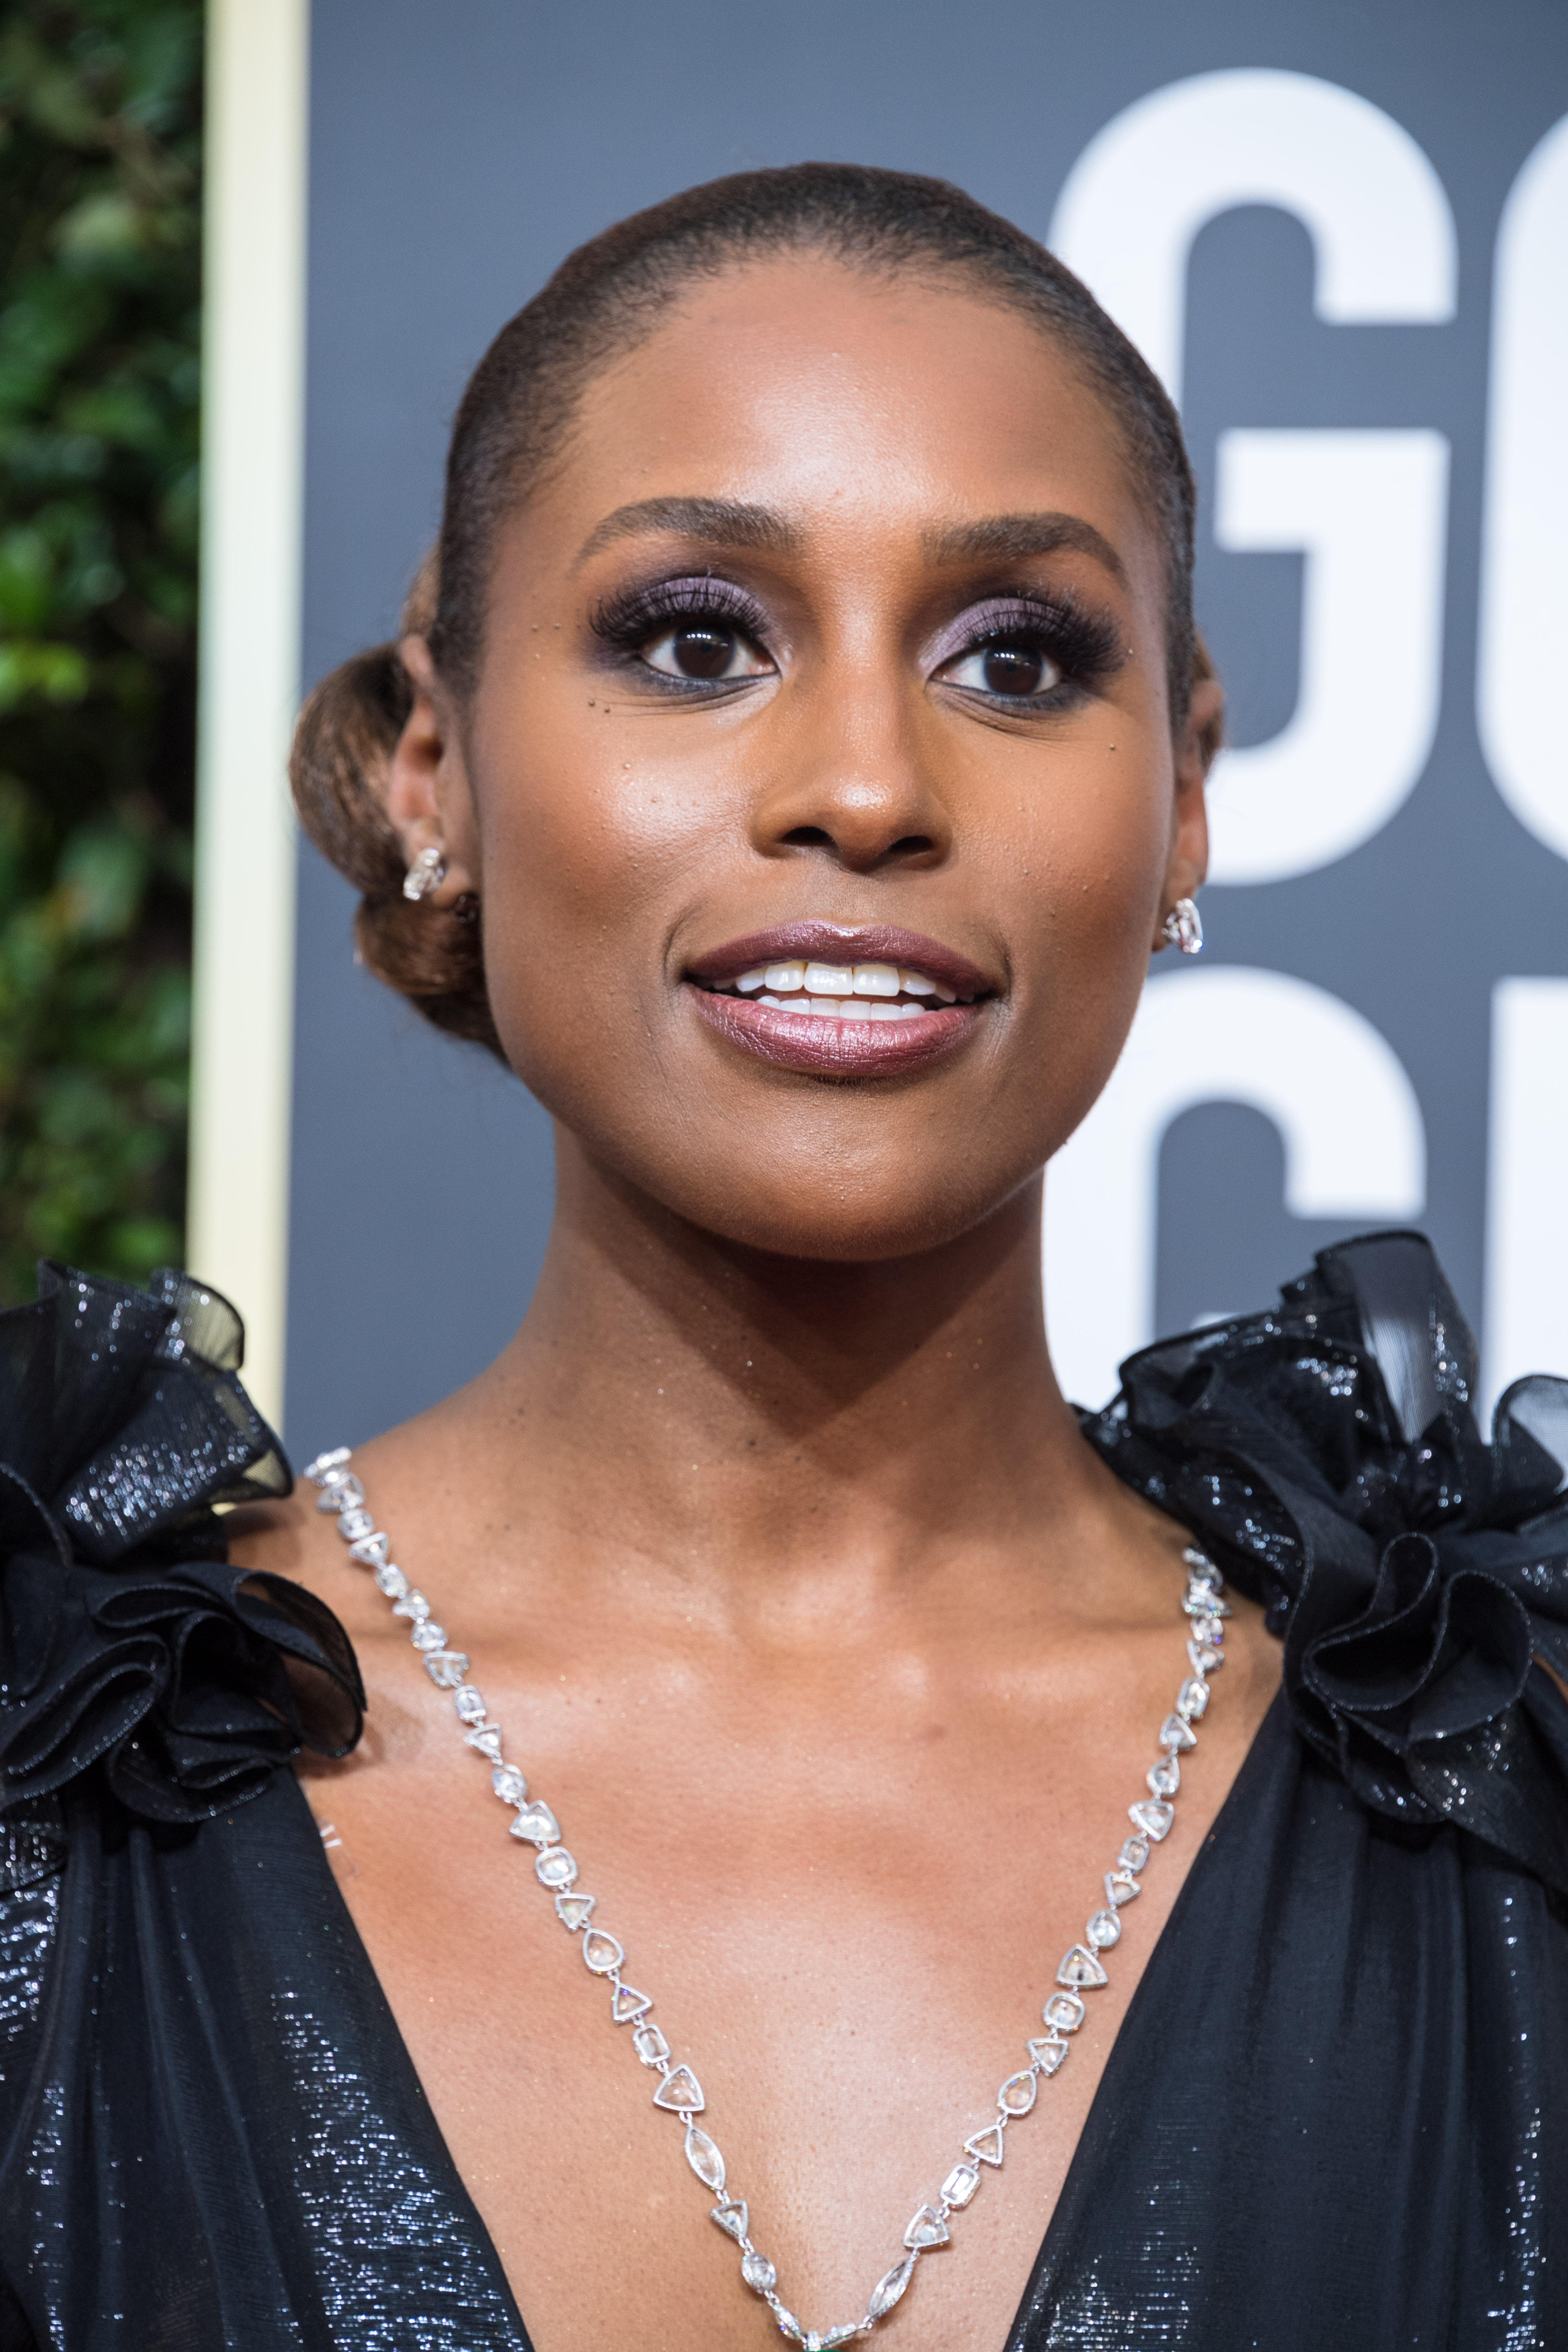 "Nominated for BEST PERFORMANCE BY AN ACTRESS IN A TELEVISION SERIES – COMEDY OR MUSICAL for her role in ""Insecure,"" actress Issa Rae attends the 75th Annual Golden Globes Awards at the Beverly Hilton in Beverly Hills, CA on Sunday, January 7, 2018."